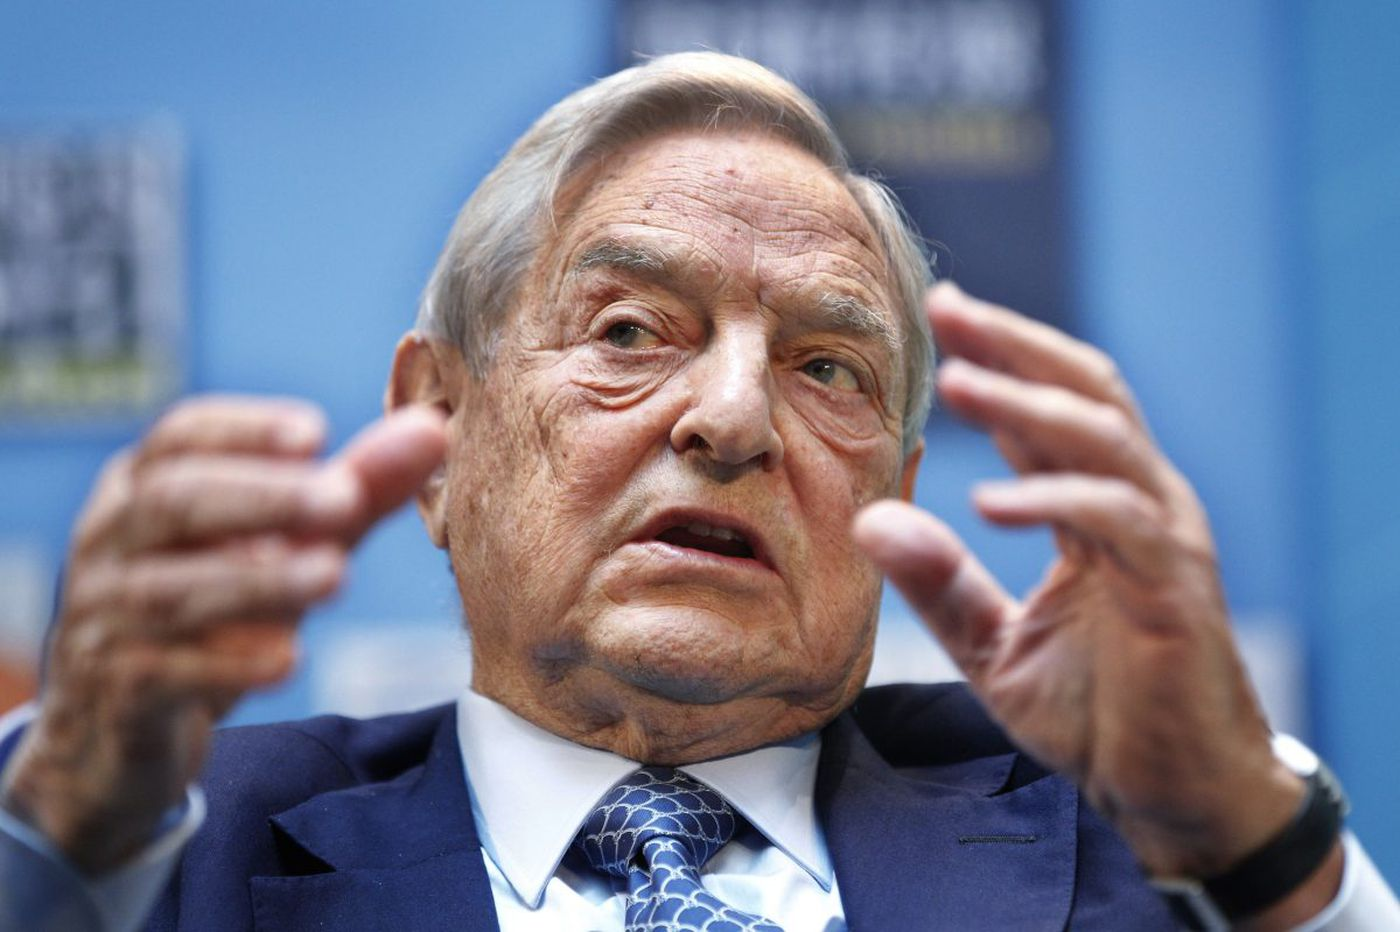 Soros cash affects DA races nationwide